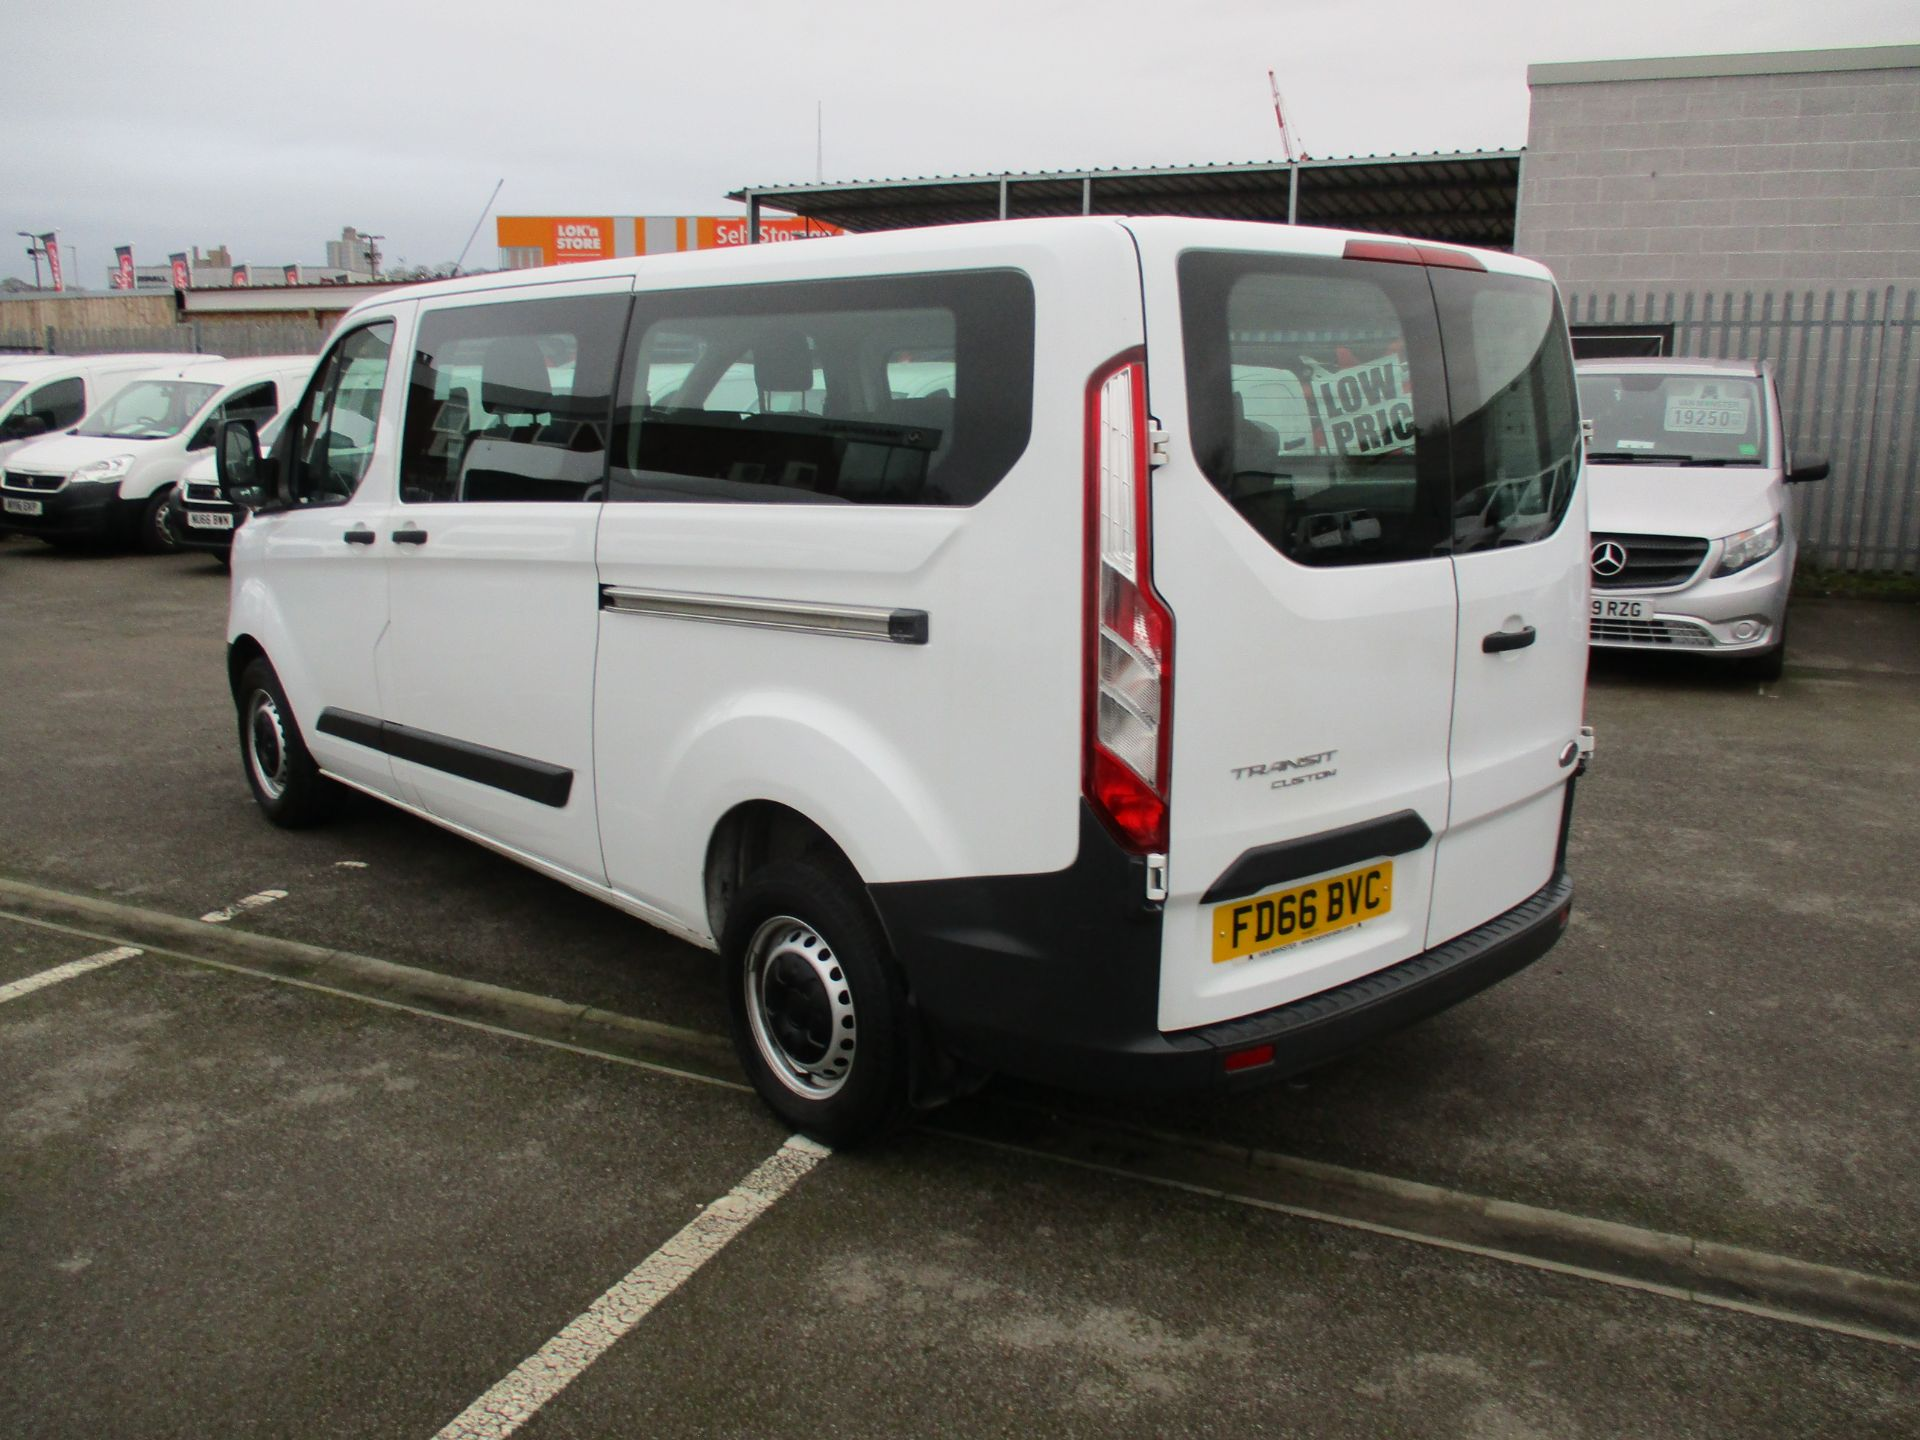 2016 Ford Transit Custom 2.0 Tdci 105Ps Low Roof Kombi Van (FD66BVC) Image 6